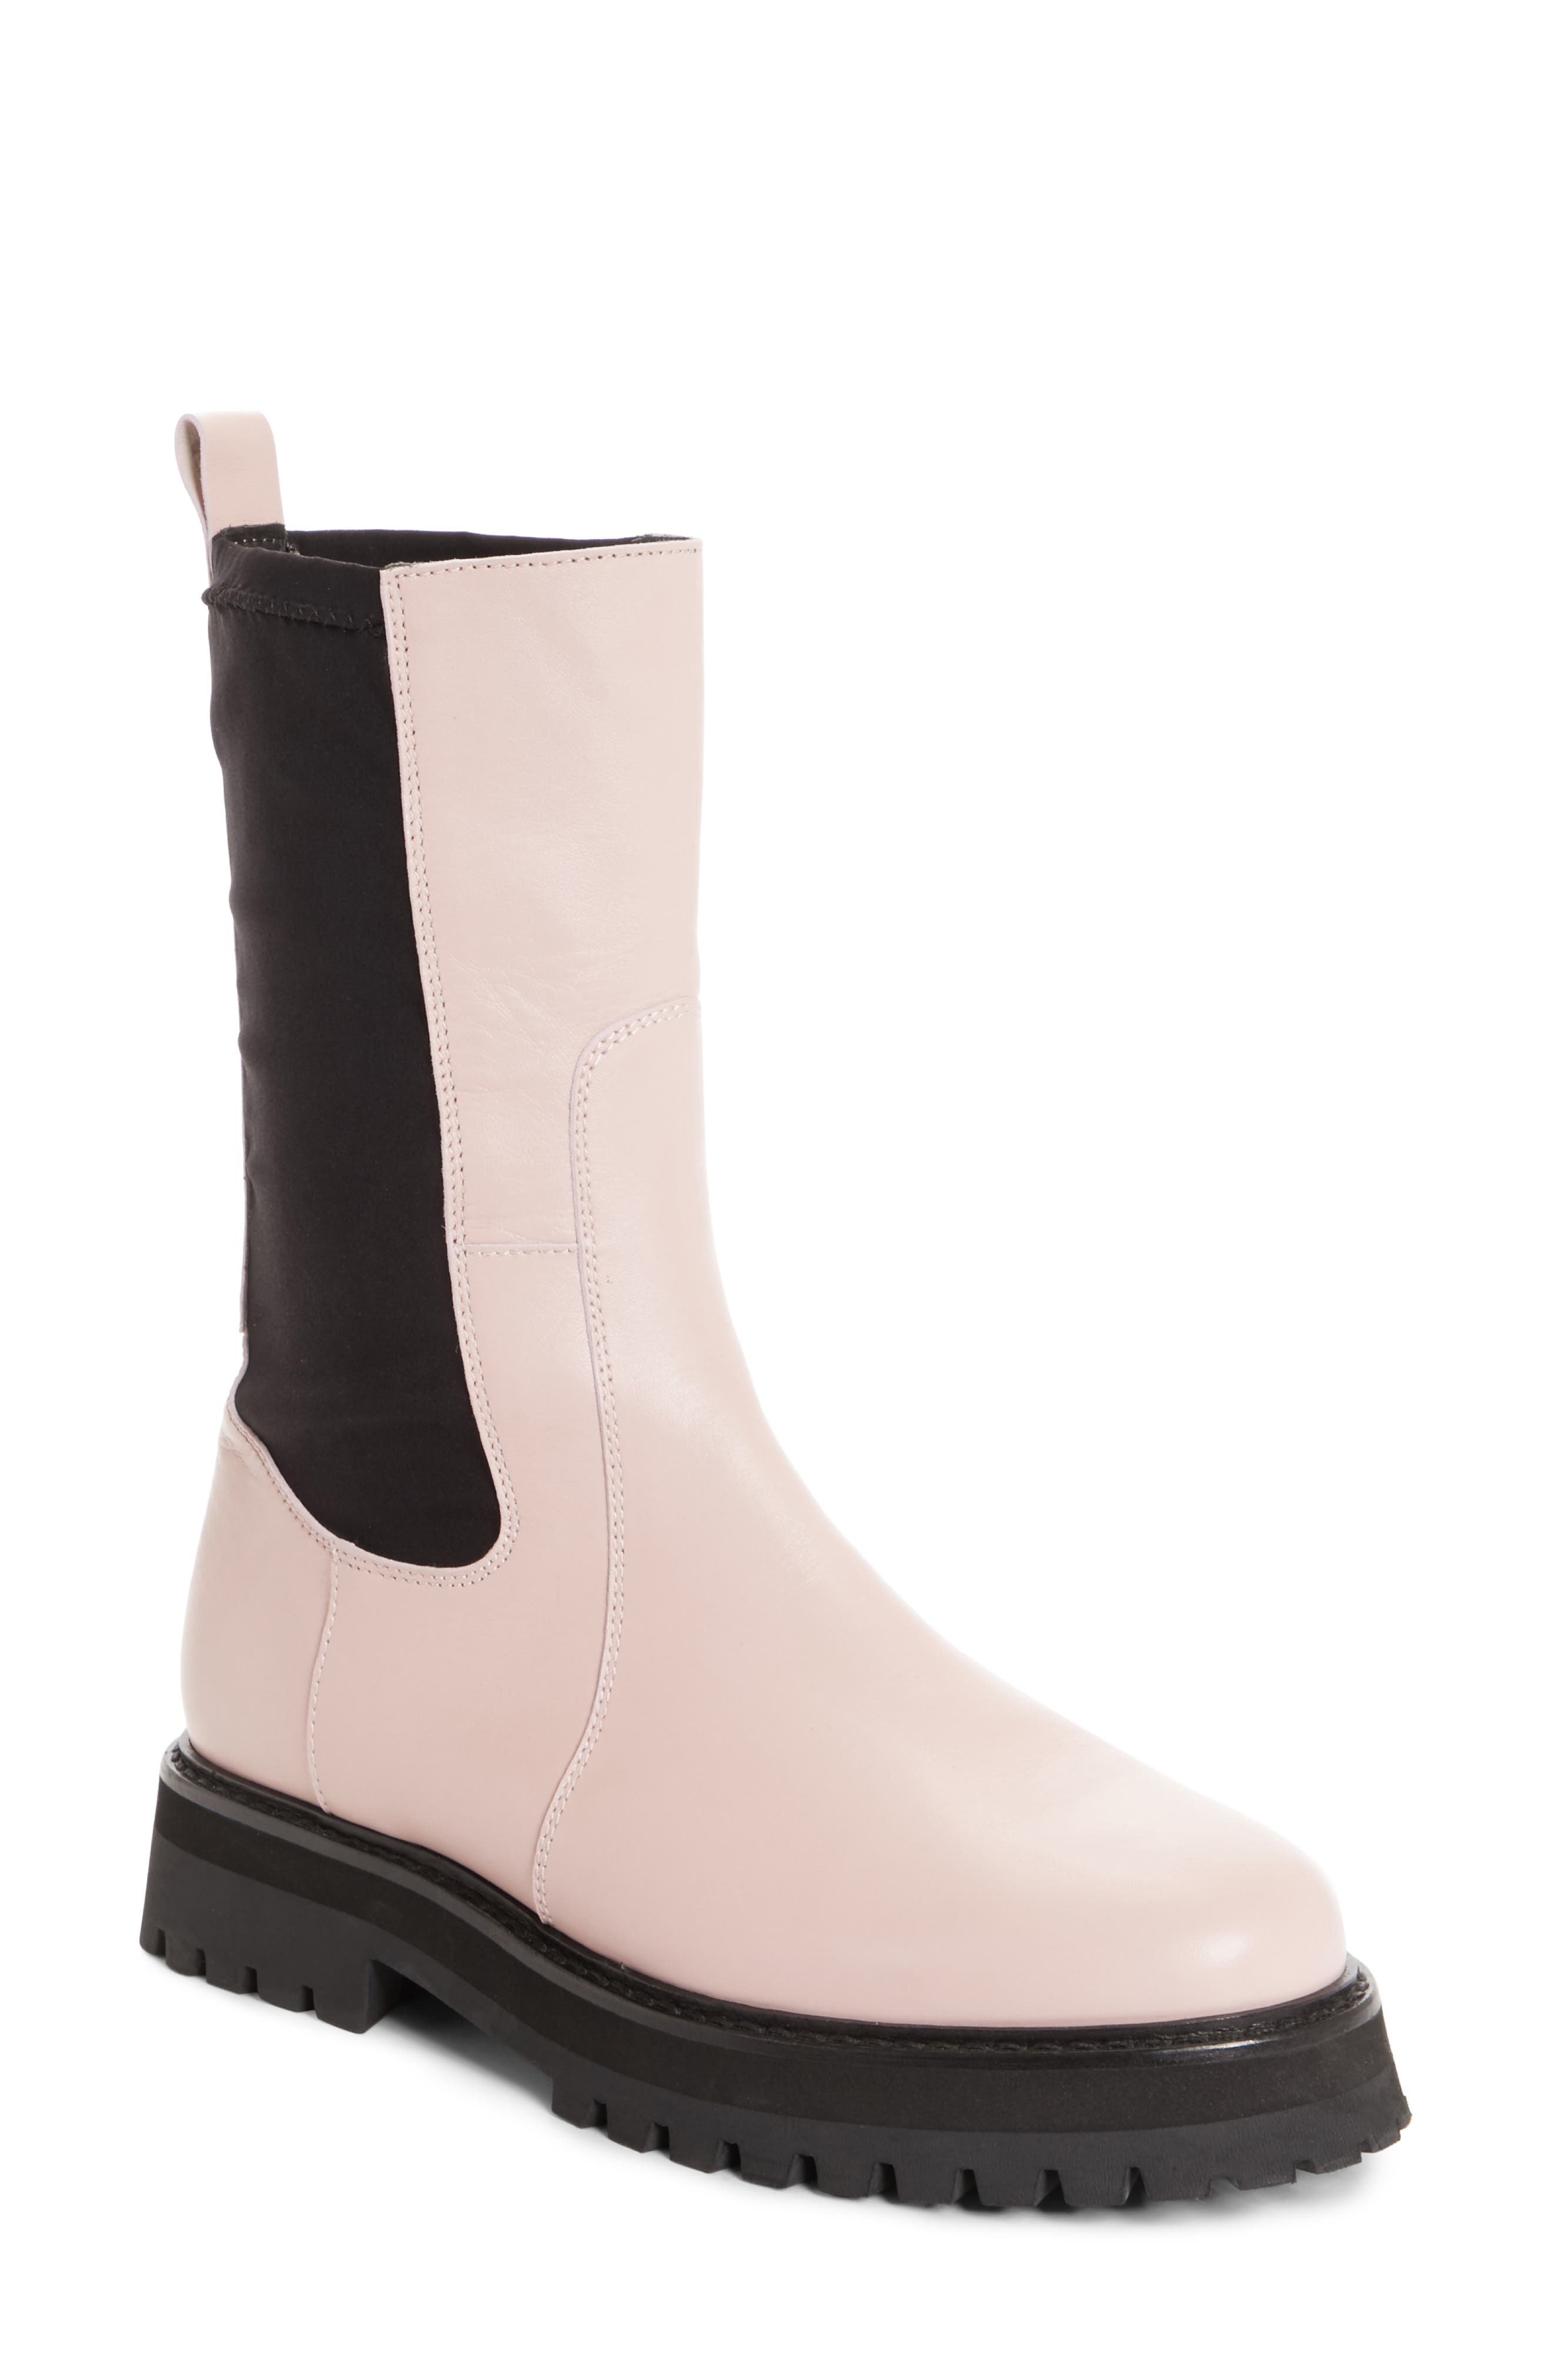 Marques'Almeida Army Boot,                         Main,                         color, Pale Pink